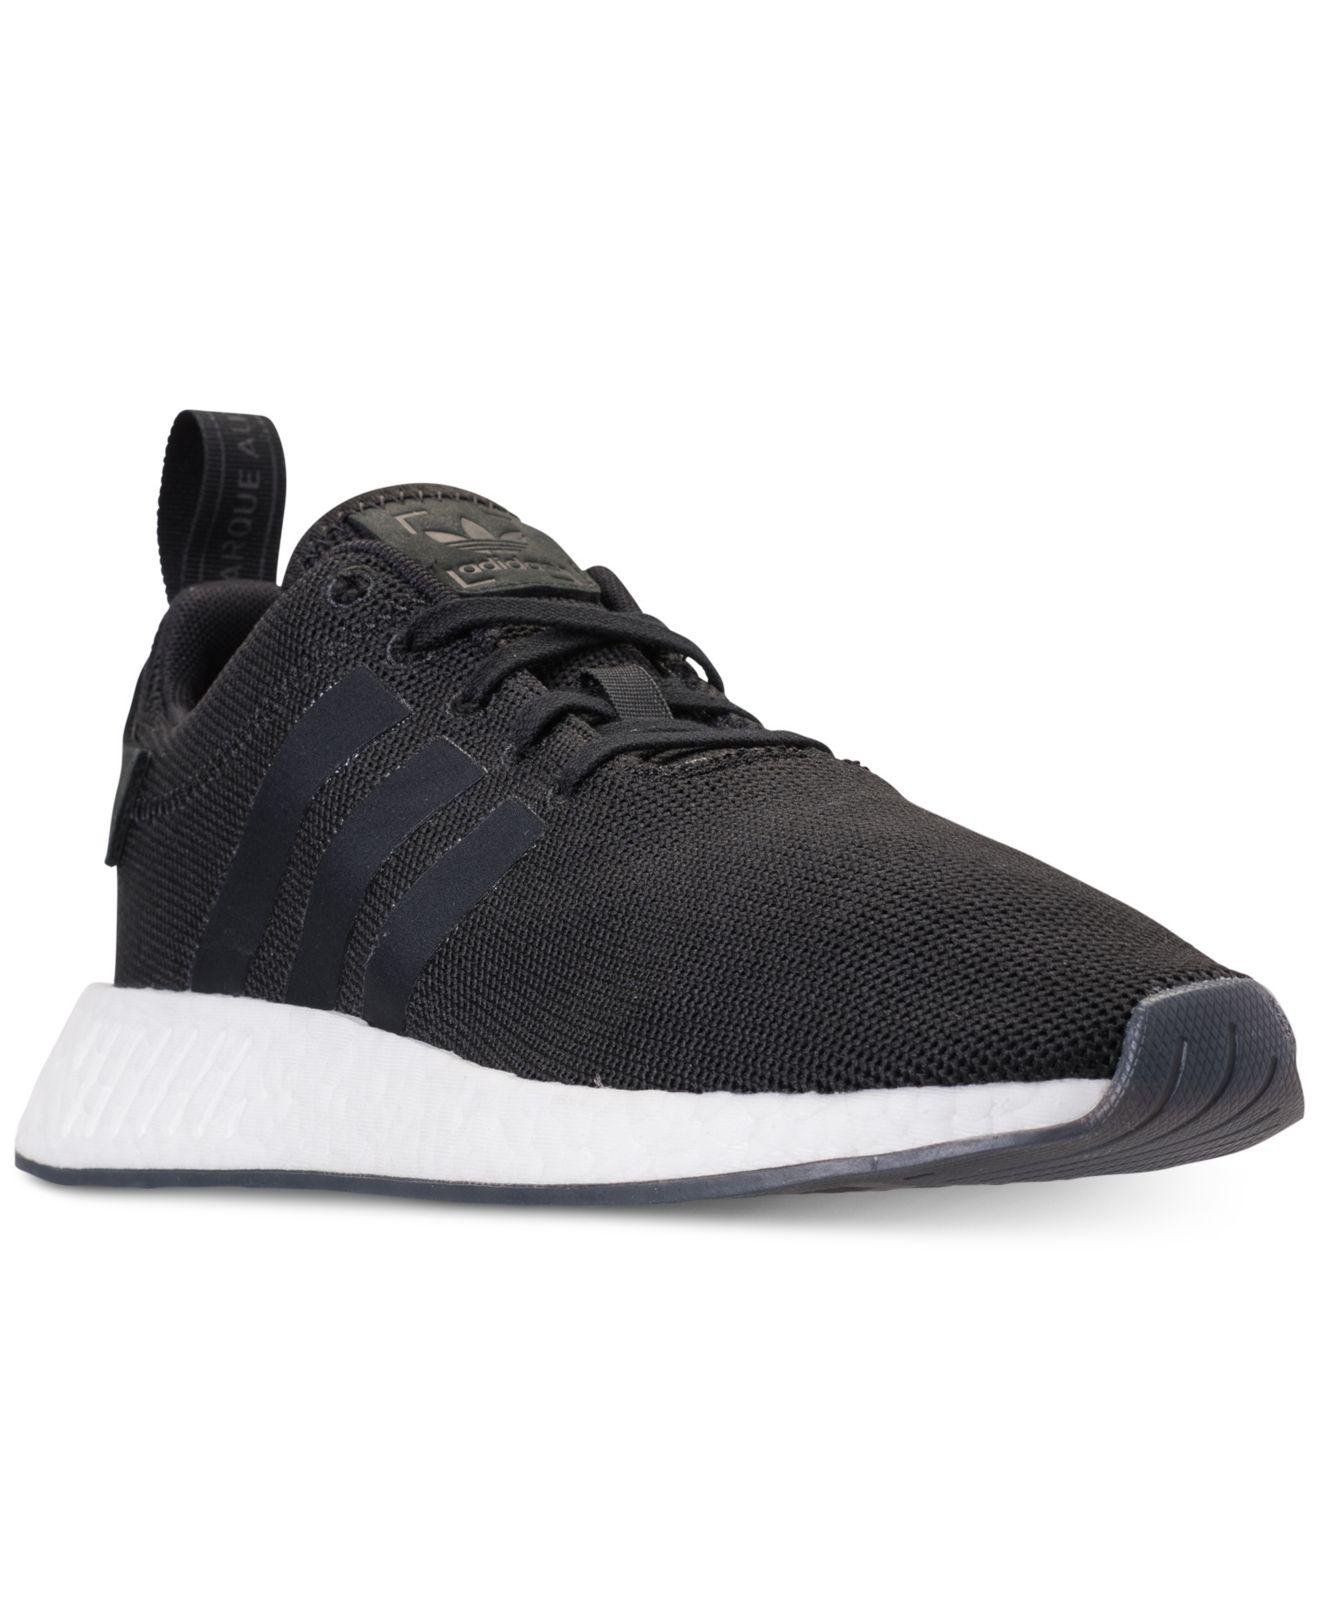 39e2d78ae Lyst - adidas Nmd R2 Casual Sneakers From Finish Line in Black for Men